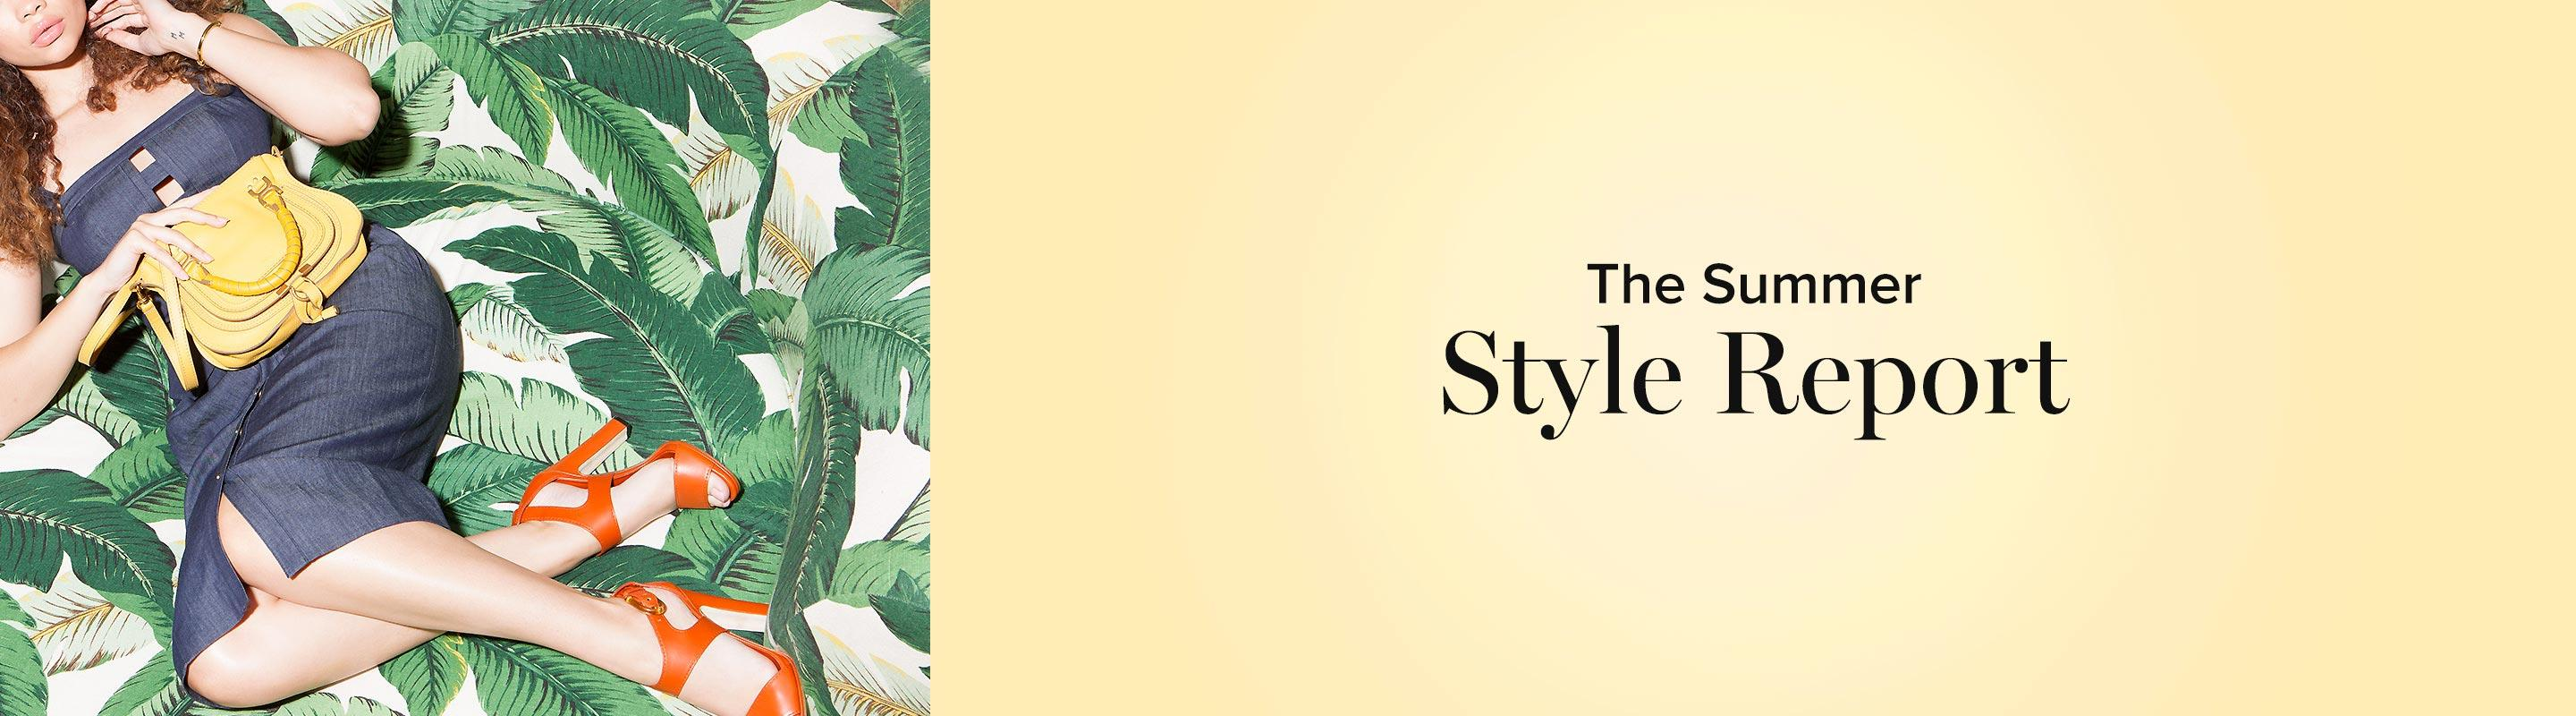 The Summer Style Report